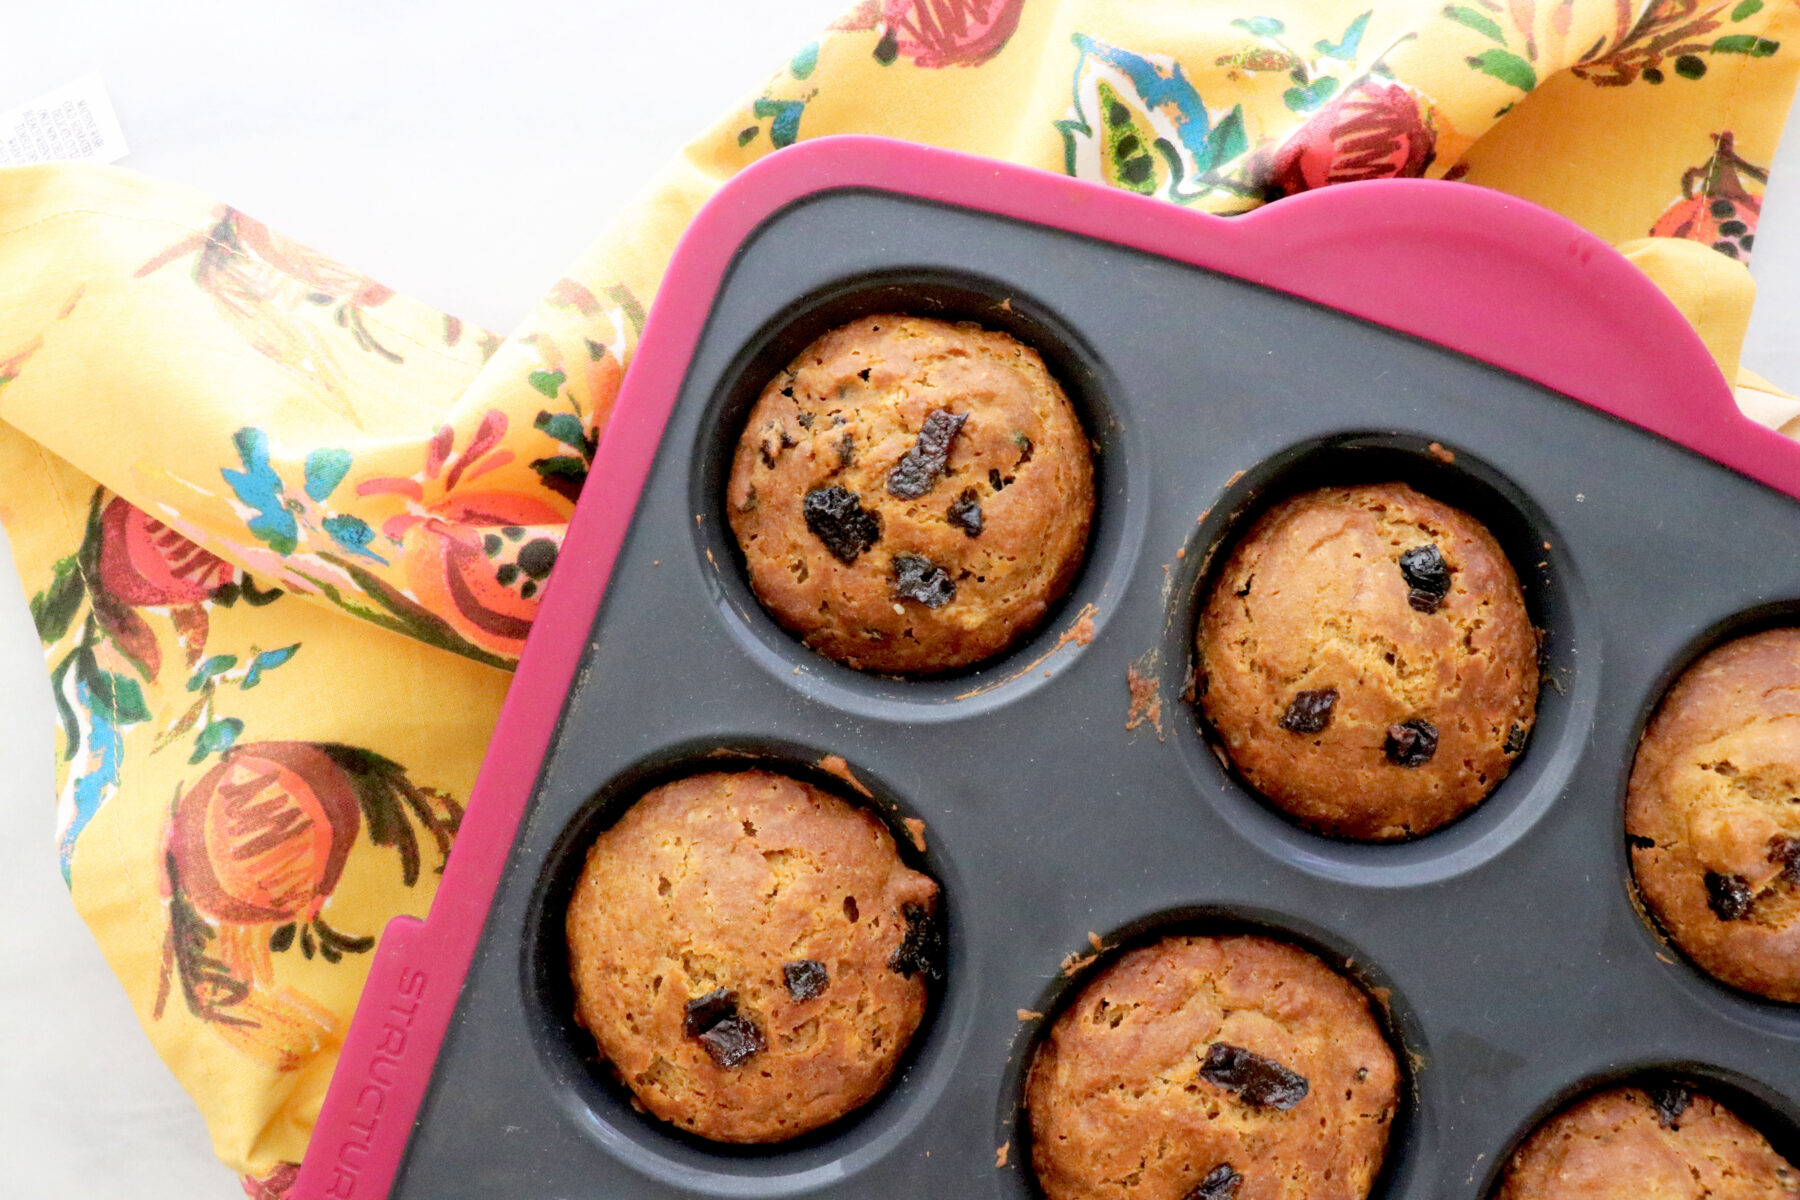 Muffin tin filled with gingerbread prune muffins all on a floral napkin and diced prunes on the side.